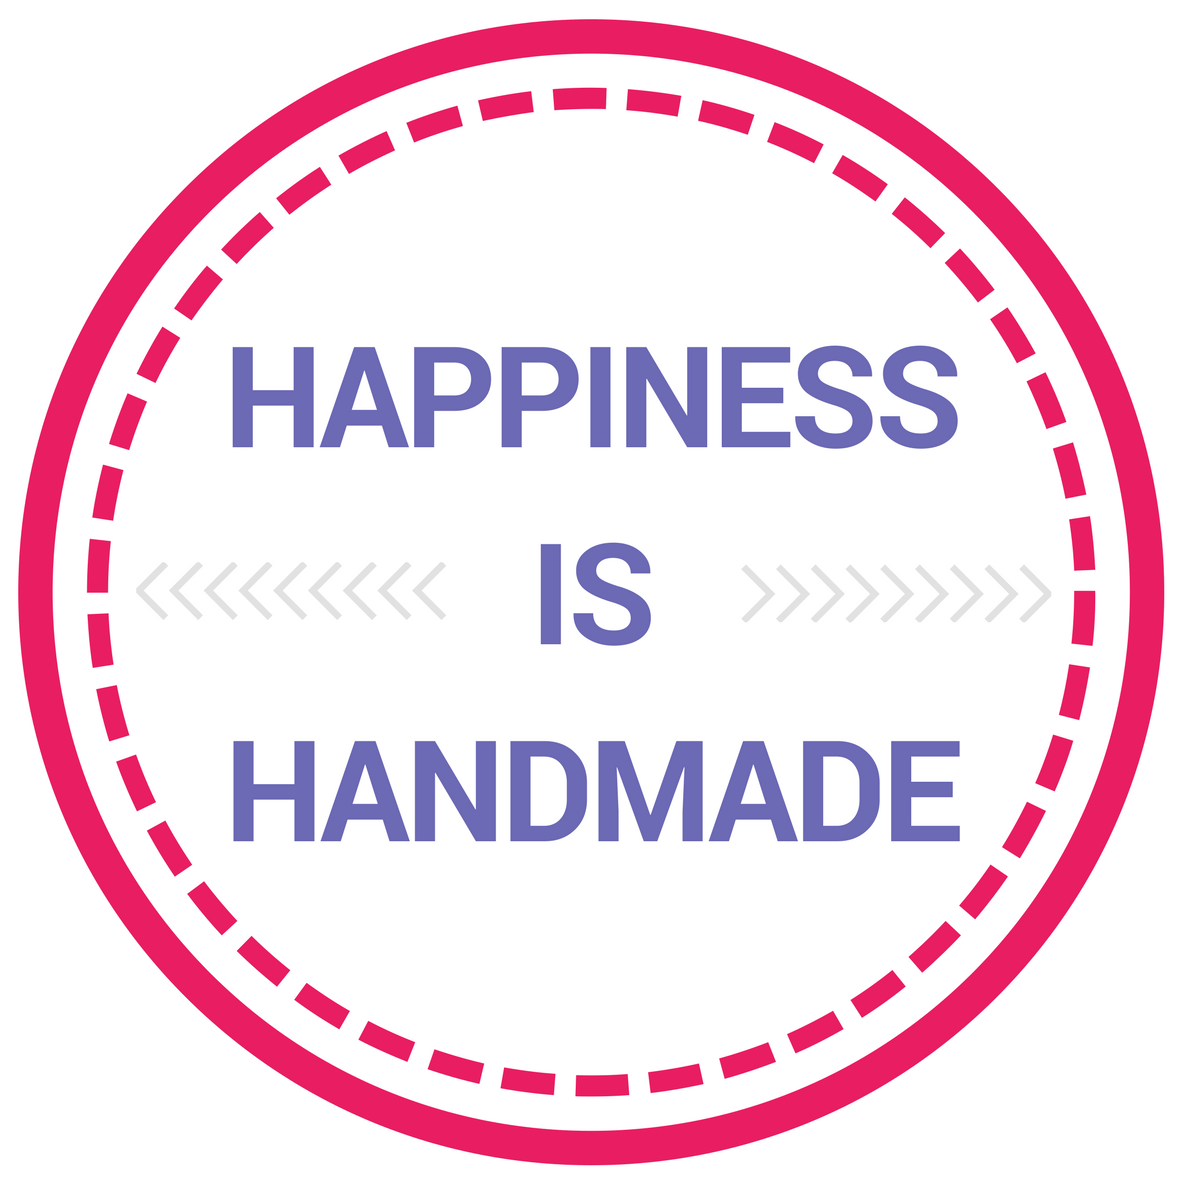 Hapiness is Handmade